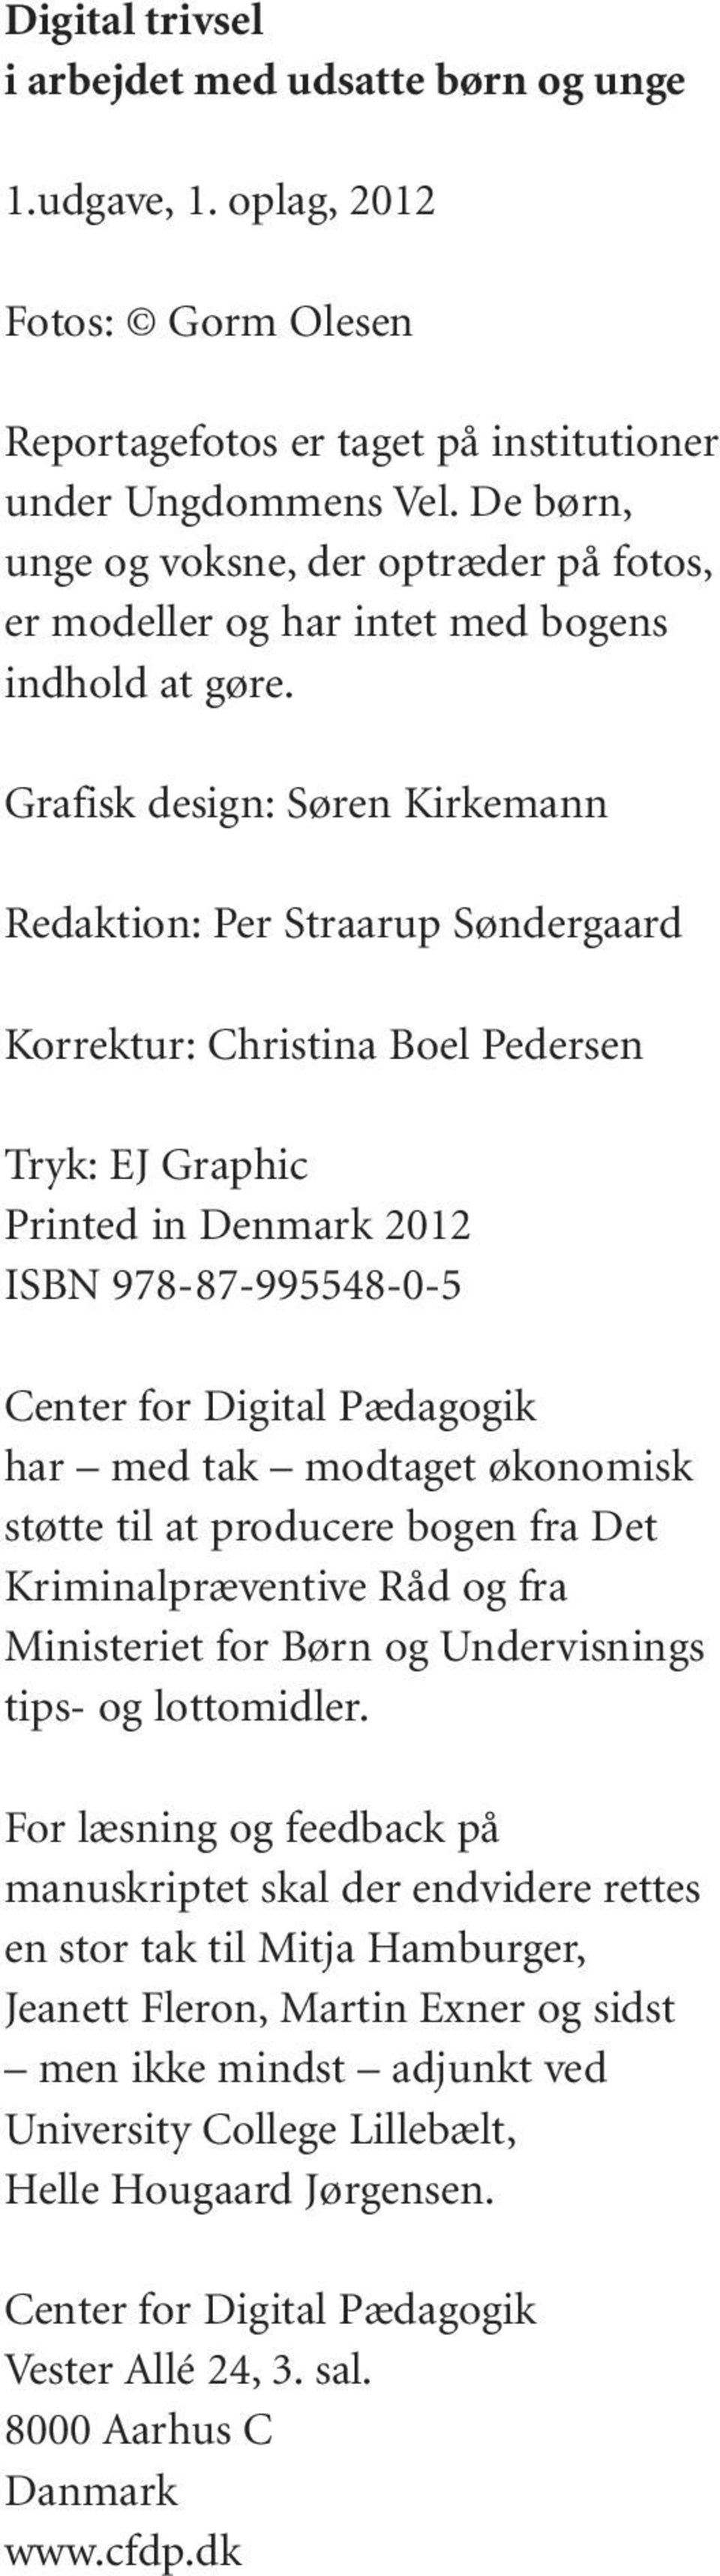 Grafisk design: Søren Kirkemann Redaktion: Per Straarup Søndergaard Korrektur: Christina Boel Pedersen Tryk: EJ Graphic Printed in Denmark 2012 ISBN 978-87-995548-0-5 Center for Digital Pædagogik har